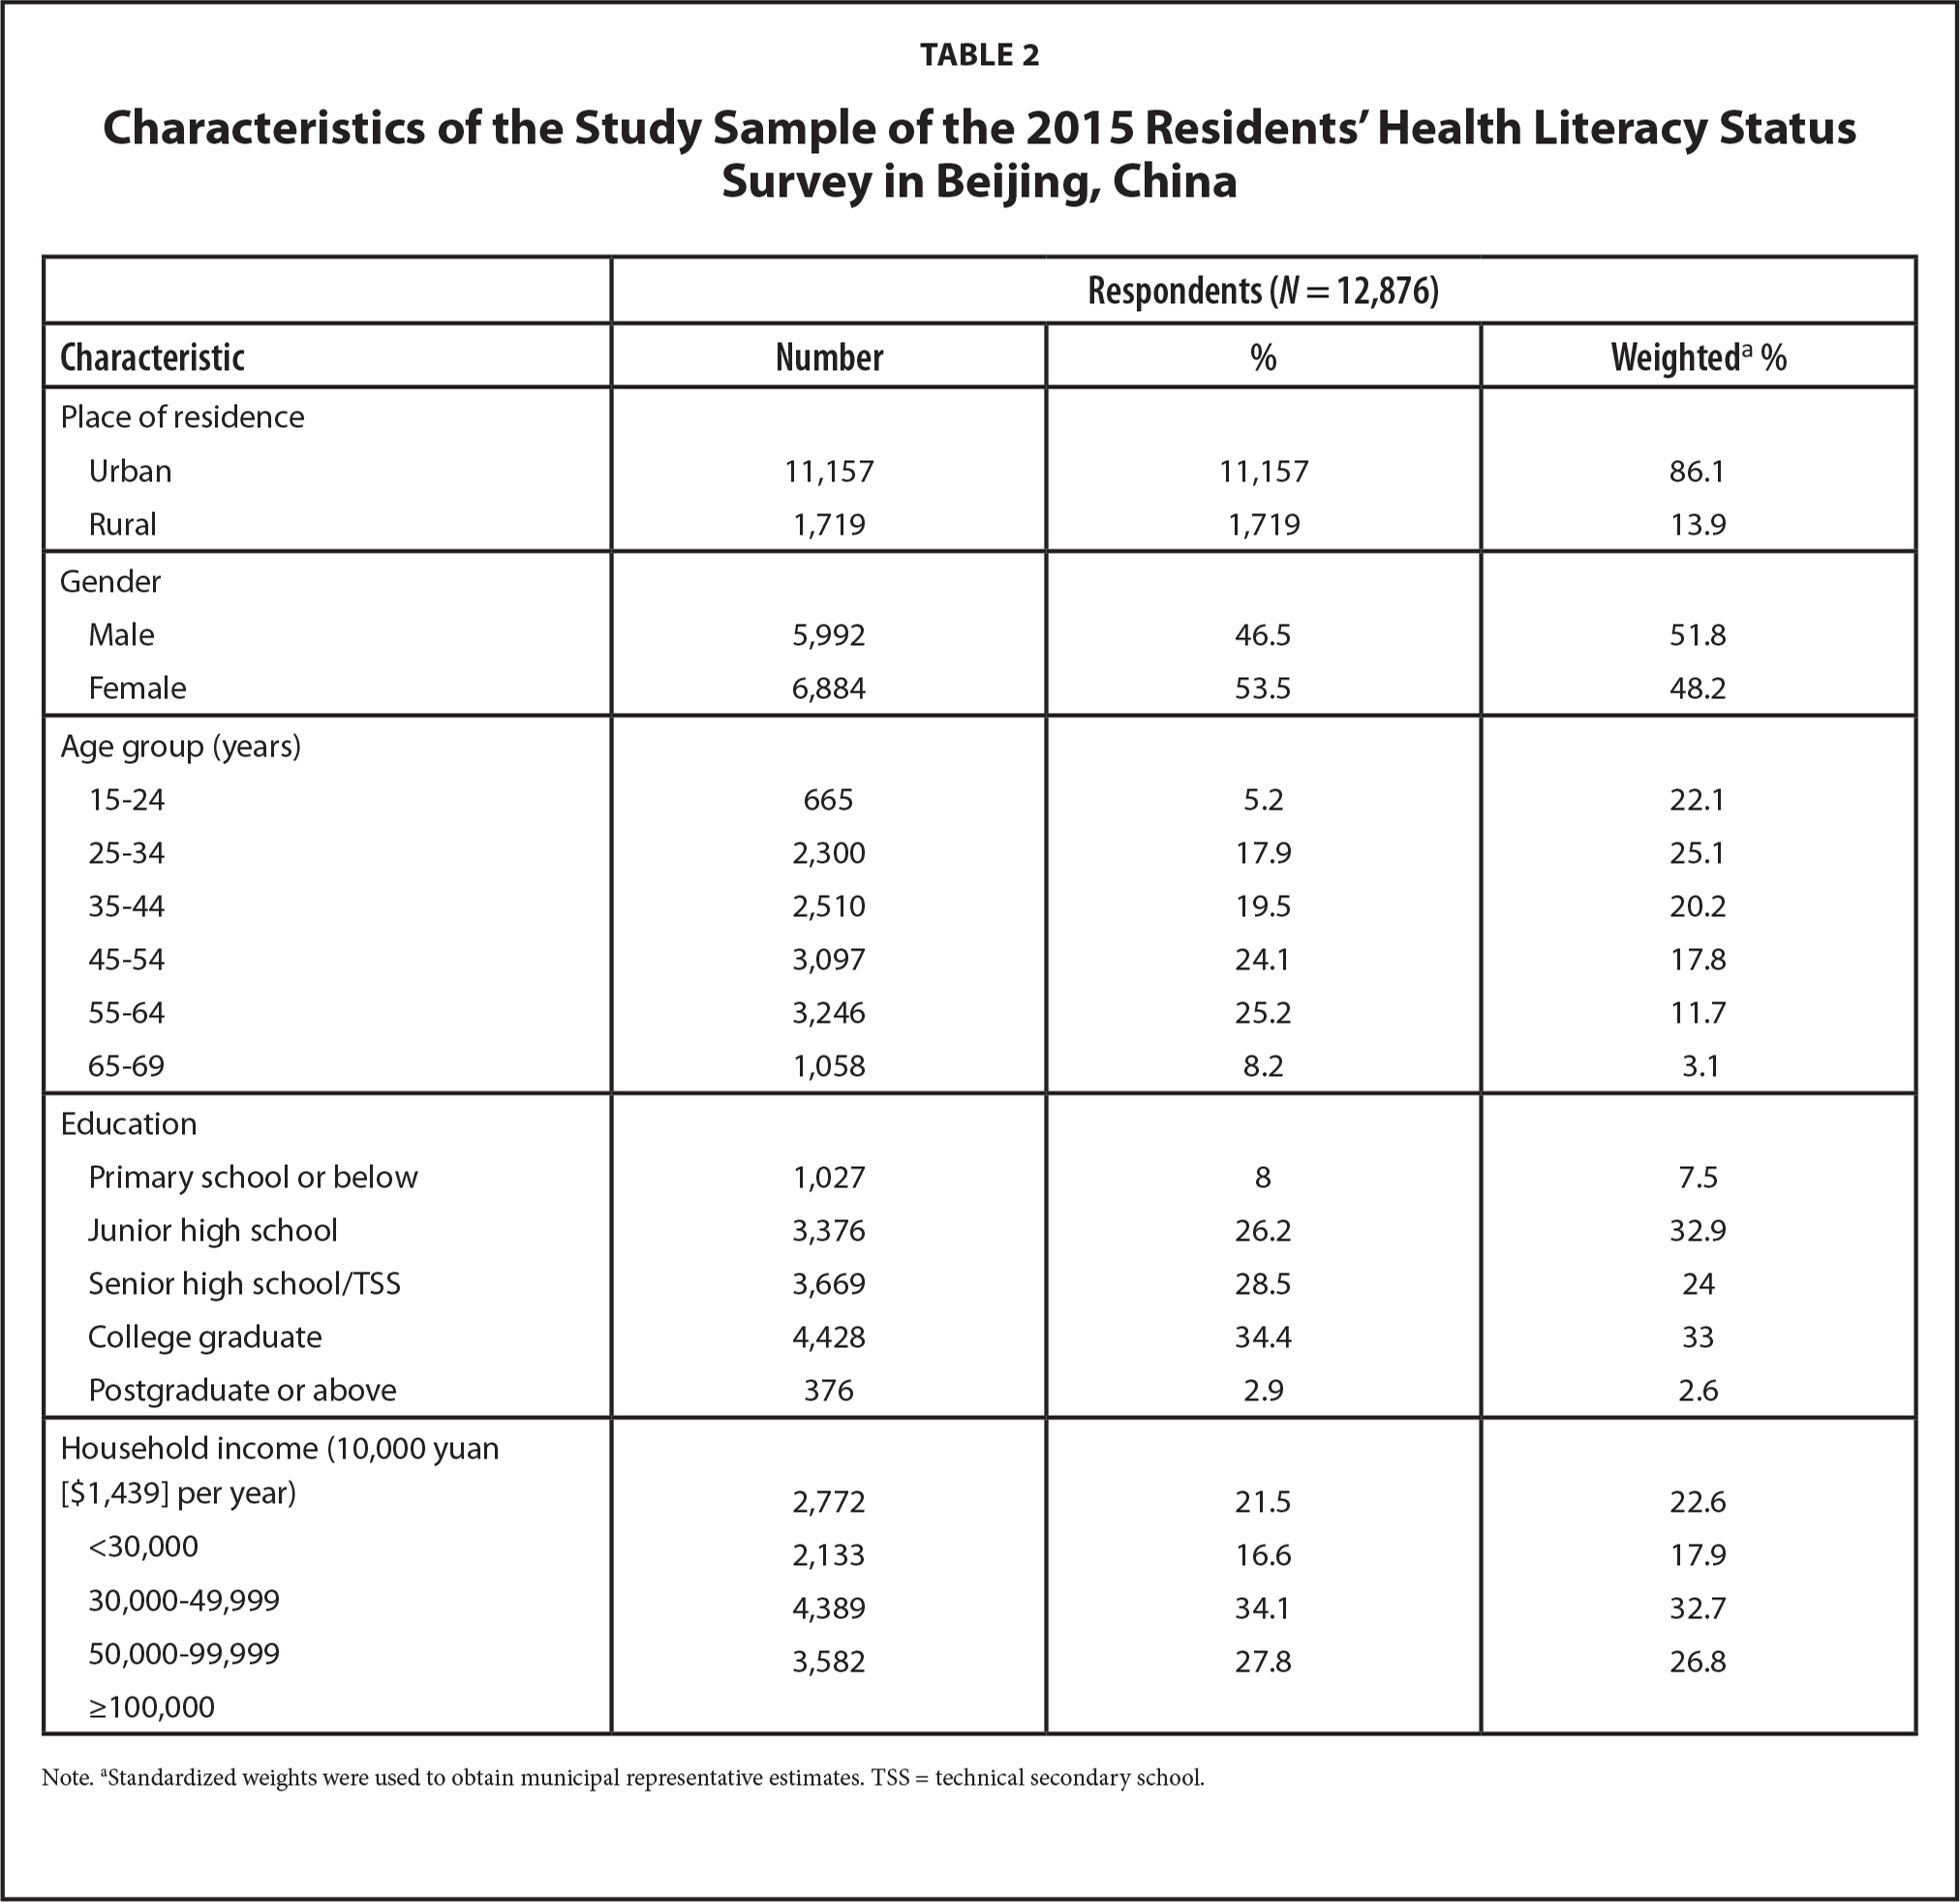 Characteristics of the Study Sample of the 2015 Residents' Health Literacy Status Survey in Beijing, China